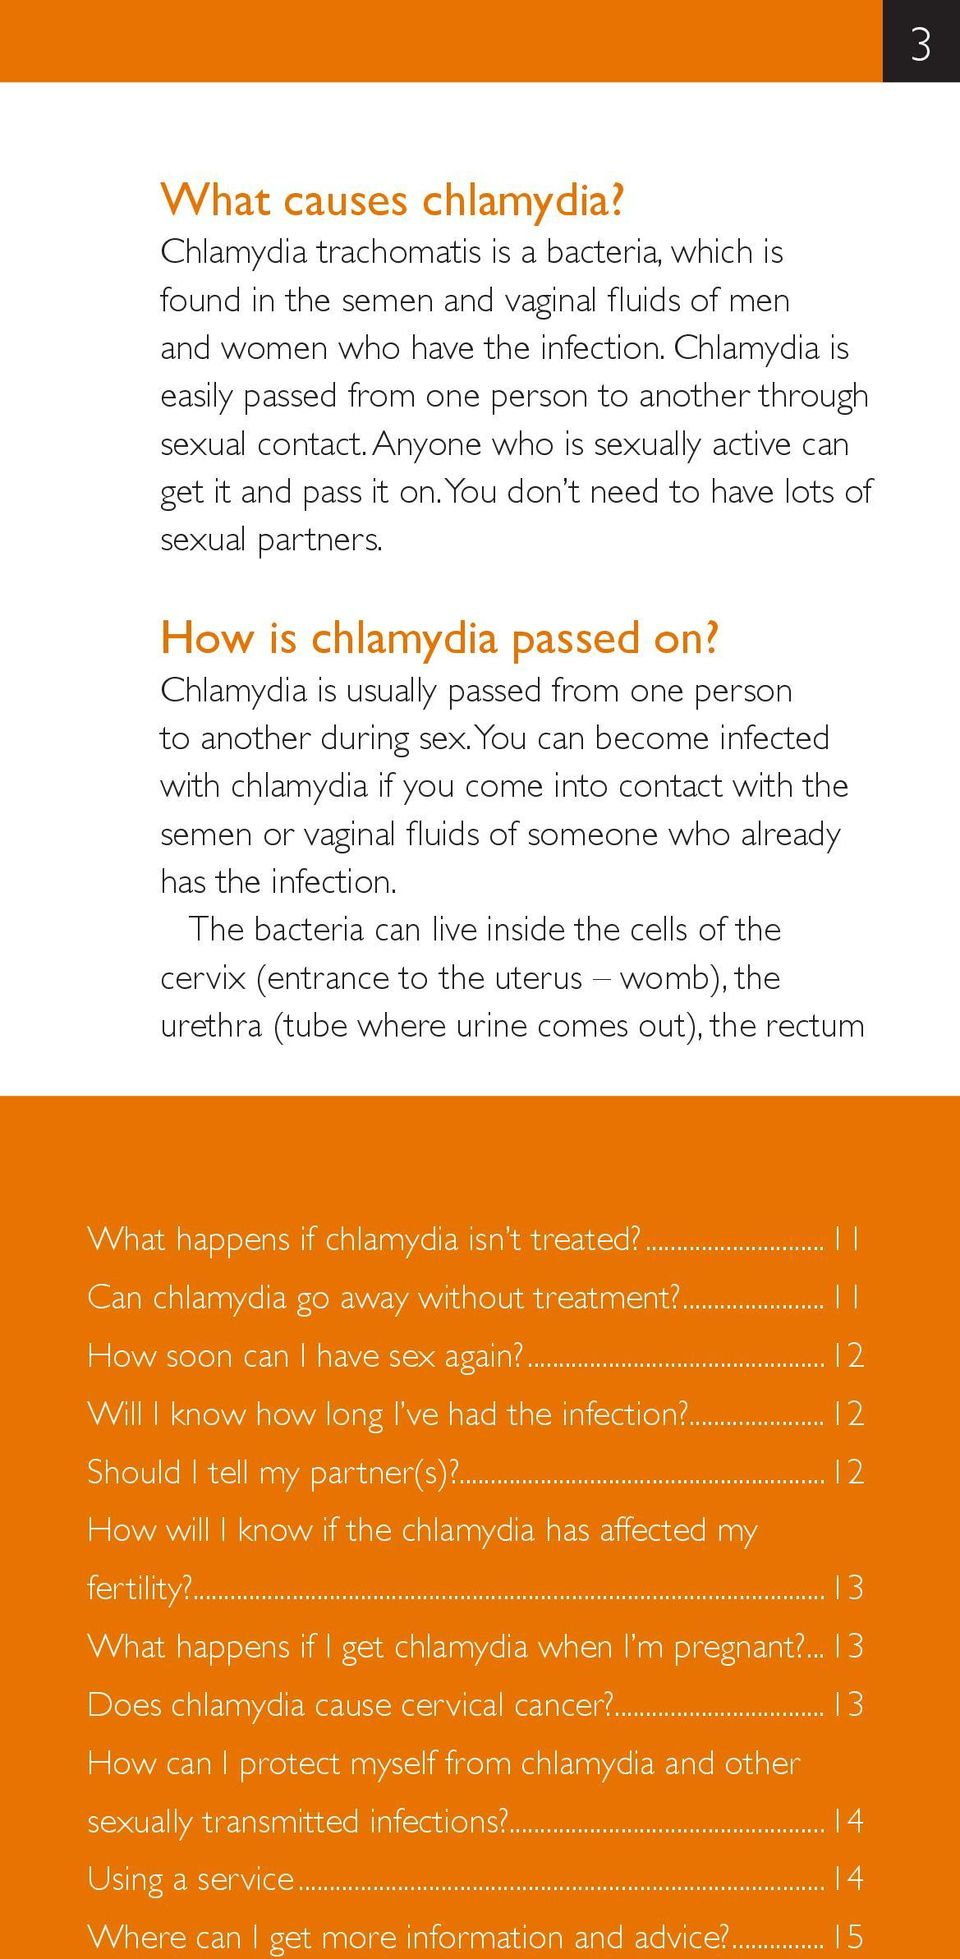 How is chlamydia passed on? Chlamydia is usually passed from one person to another during sex.